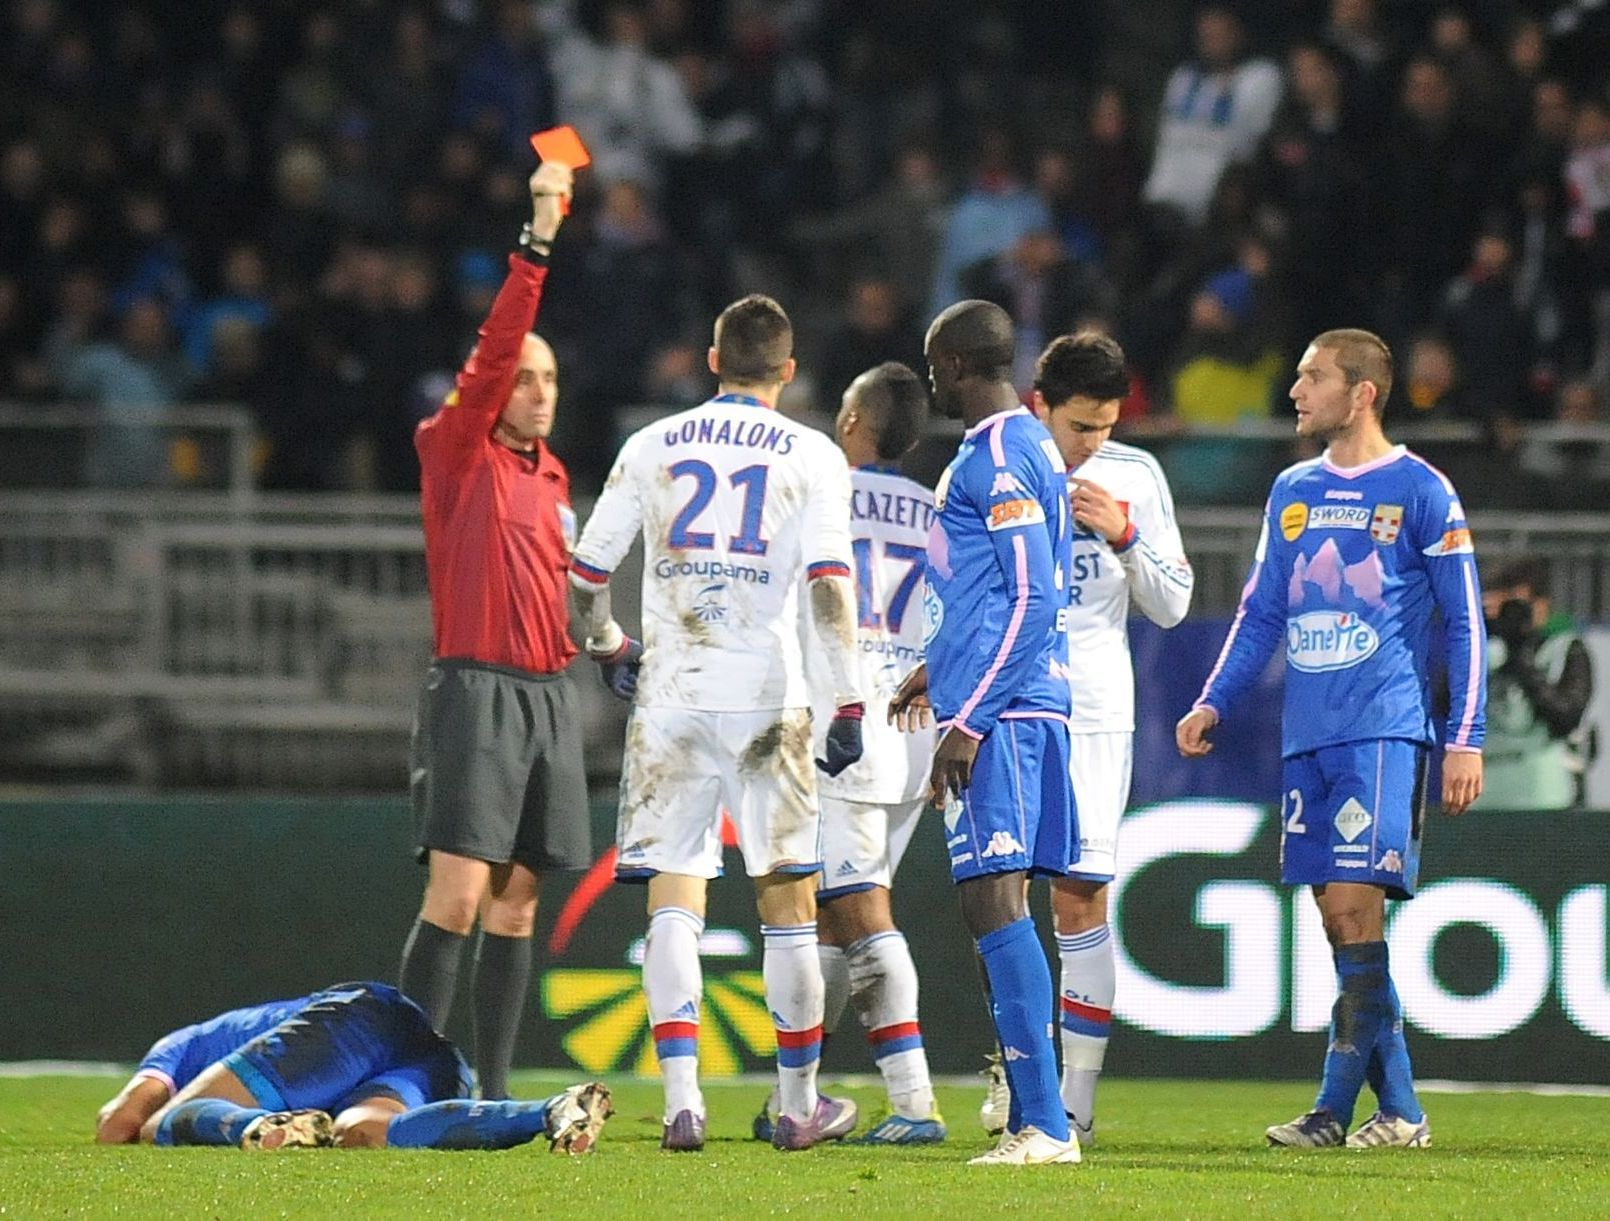 Ligue 1: Match Evian Thonon vs Olympique Lyonnais en direct live streaming